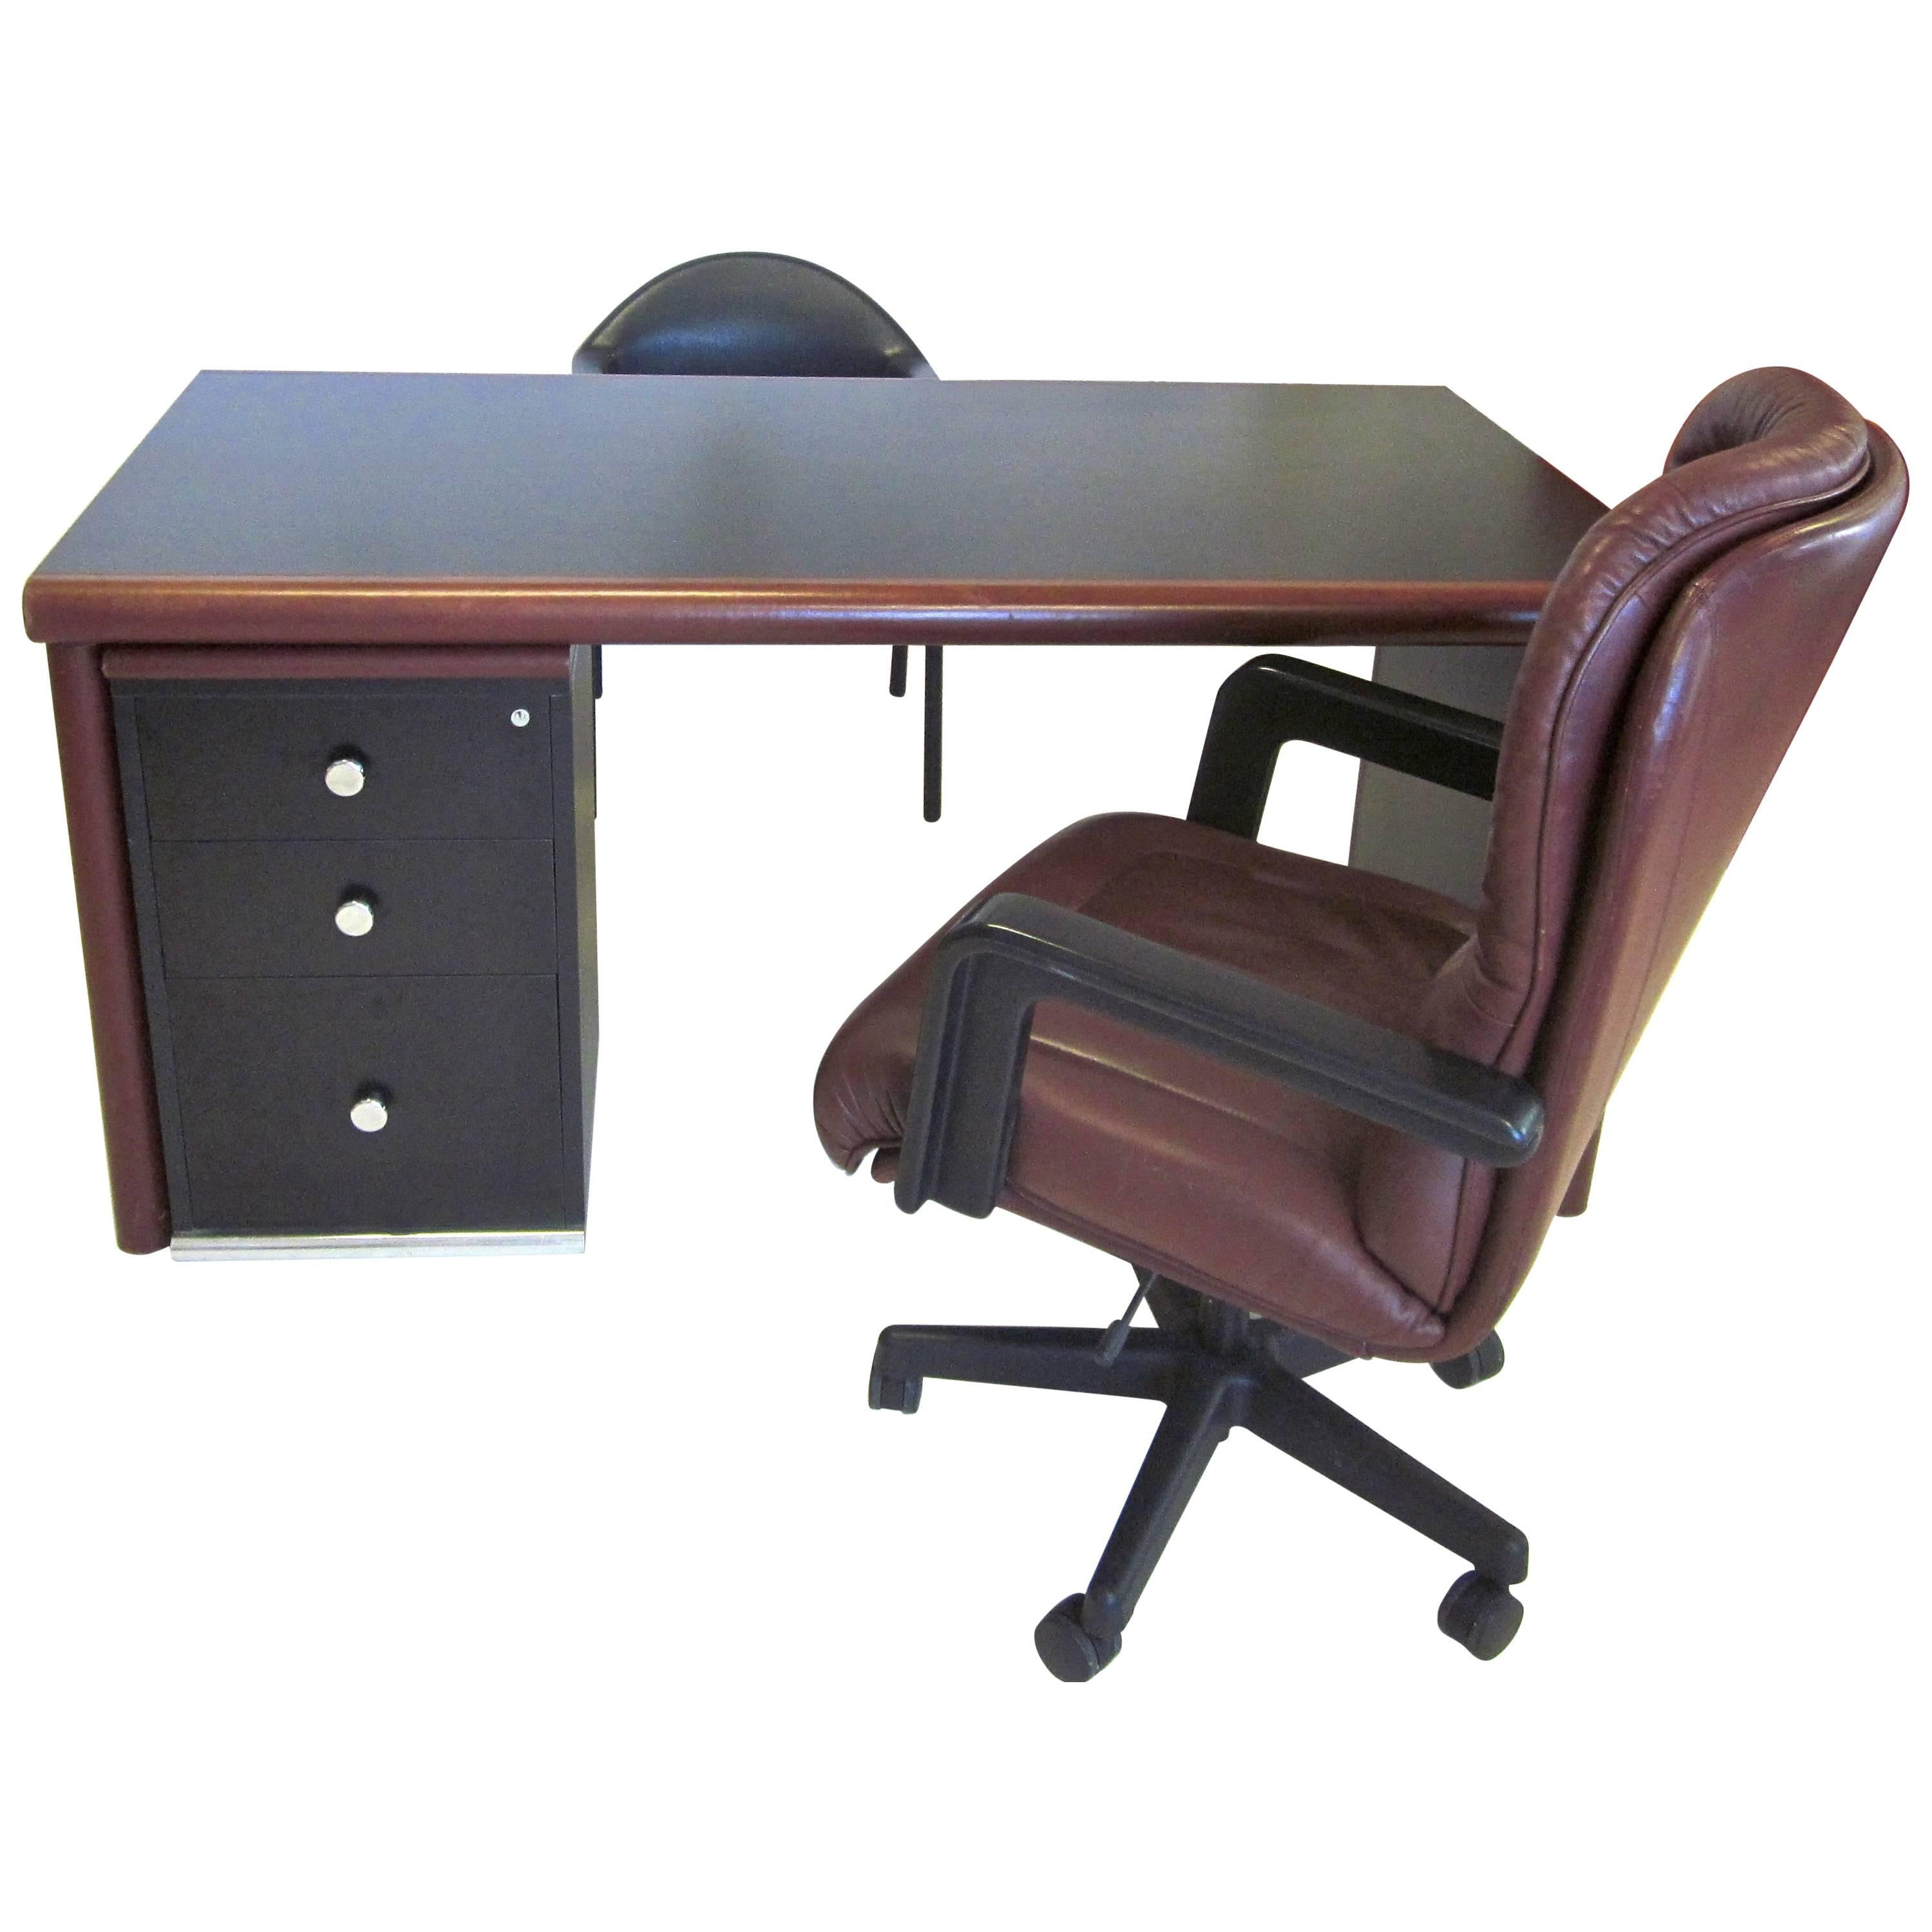 """""""Big-Superbig"""" Desk Suite by Guido Faleschini for Mariani Via Pace Collection"""